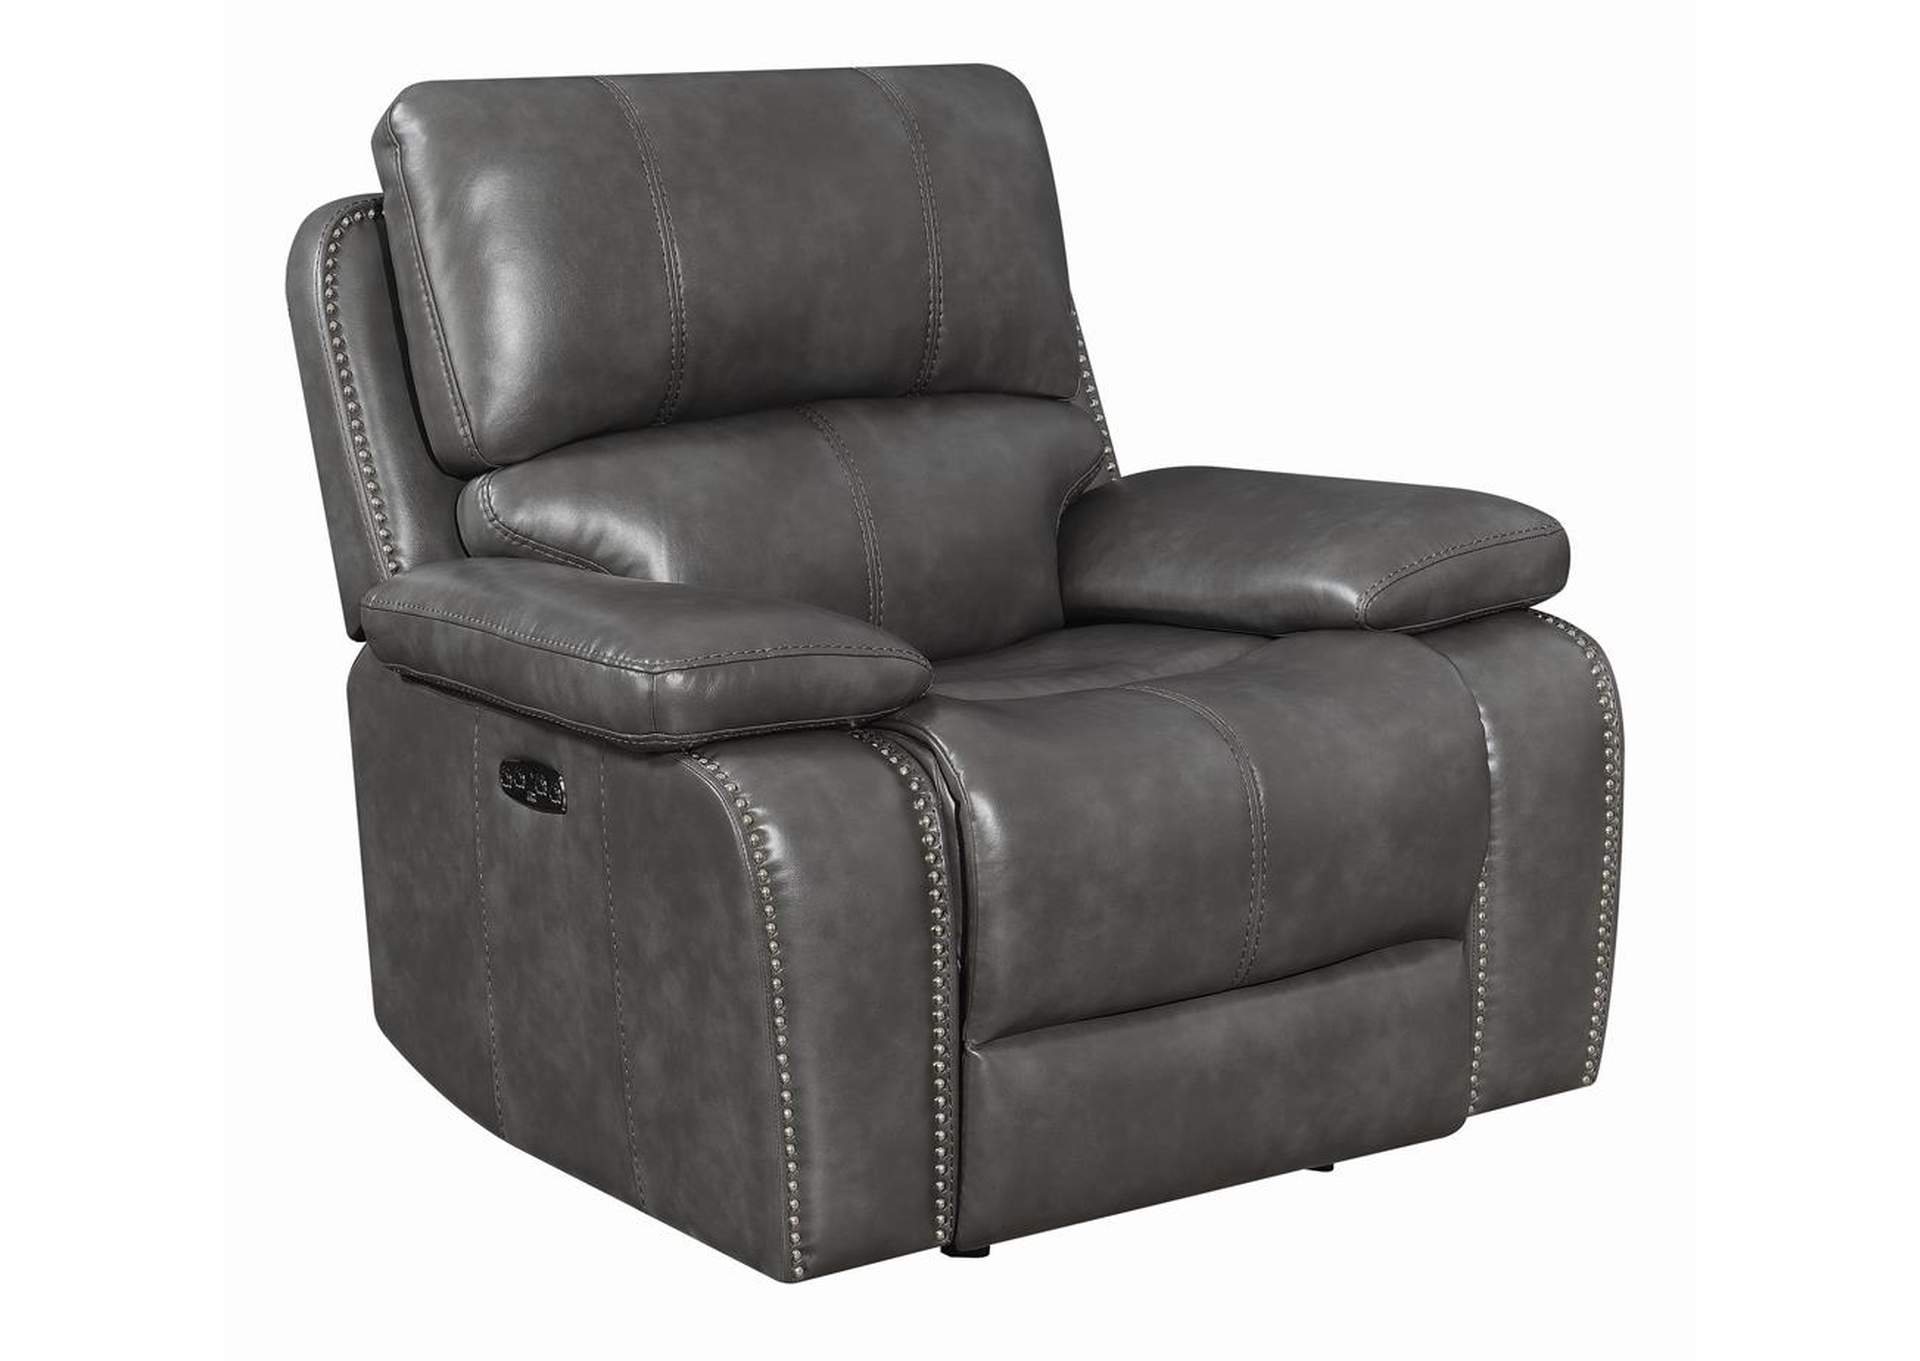 Ravenna Charcoal Reclining Glider Recliner,Coaster Furniture